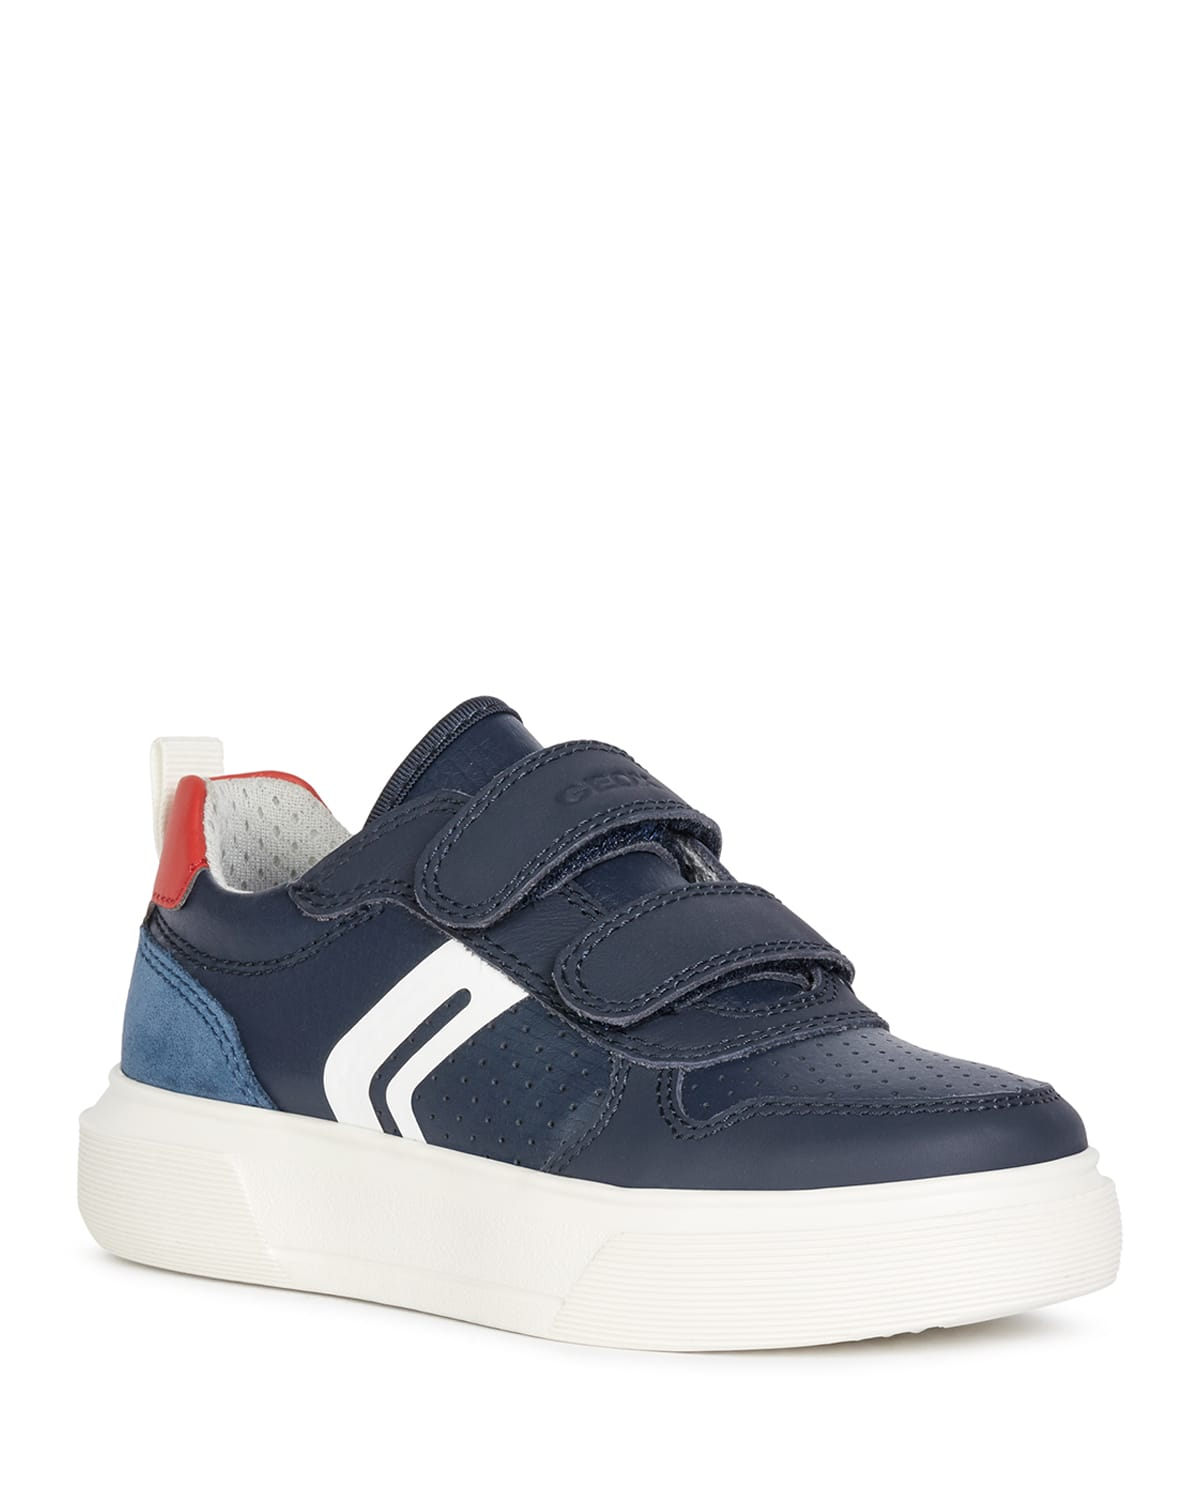 Boy's Nettuno Perforated Grip-Strap Sneakers